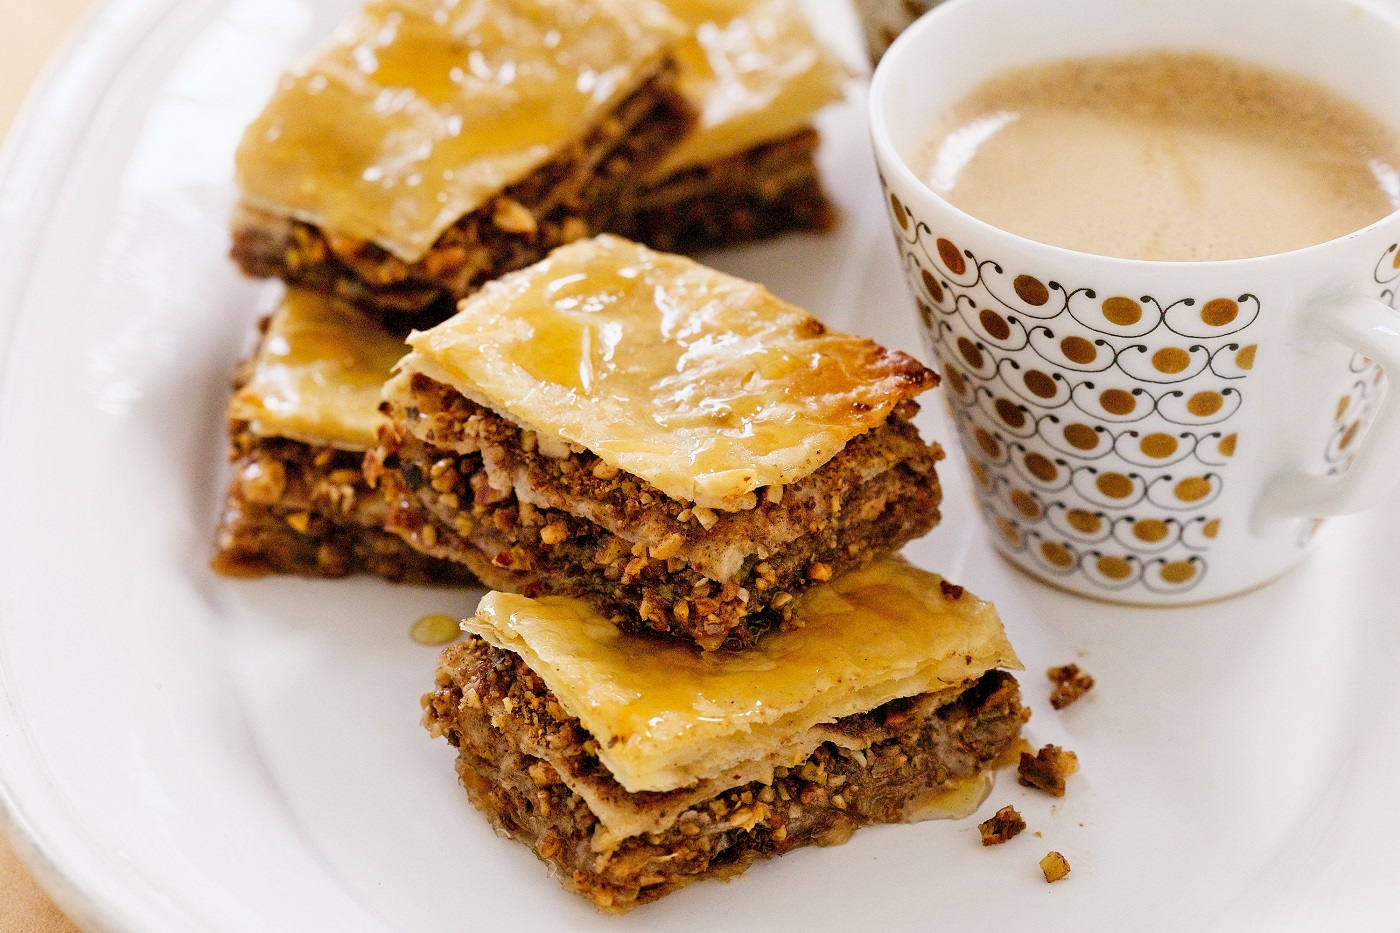 An image of a Greek Dessert called Baklava, with a cup of coffee.